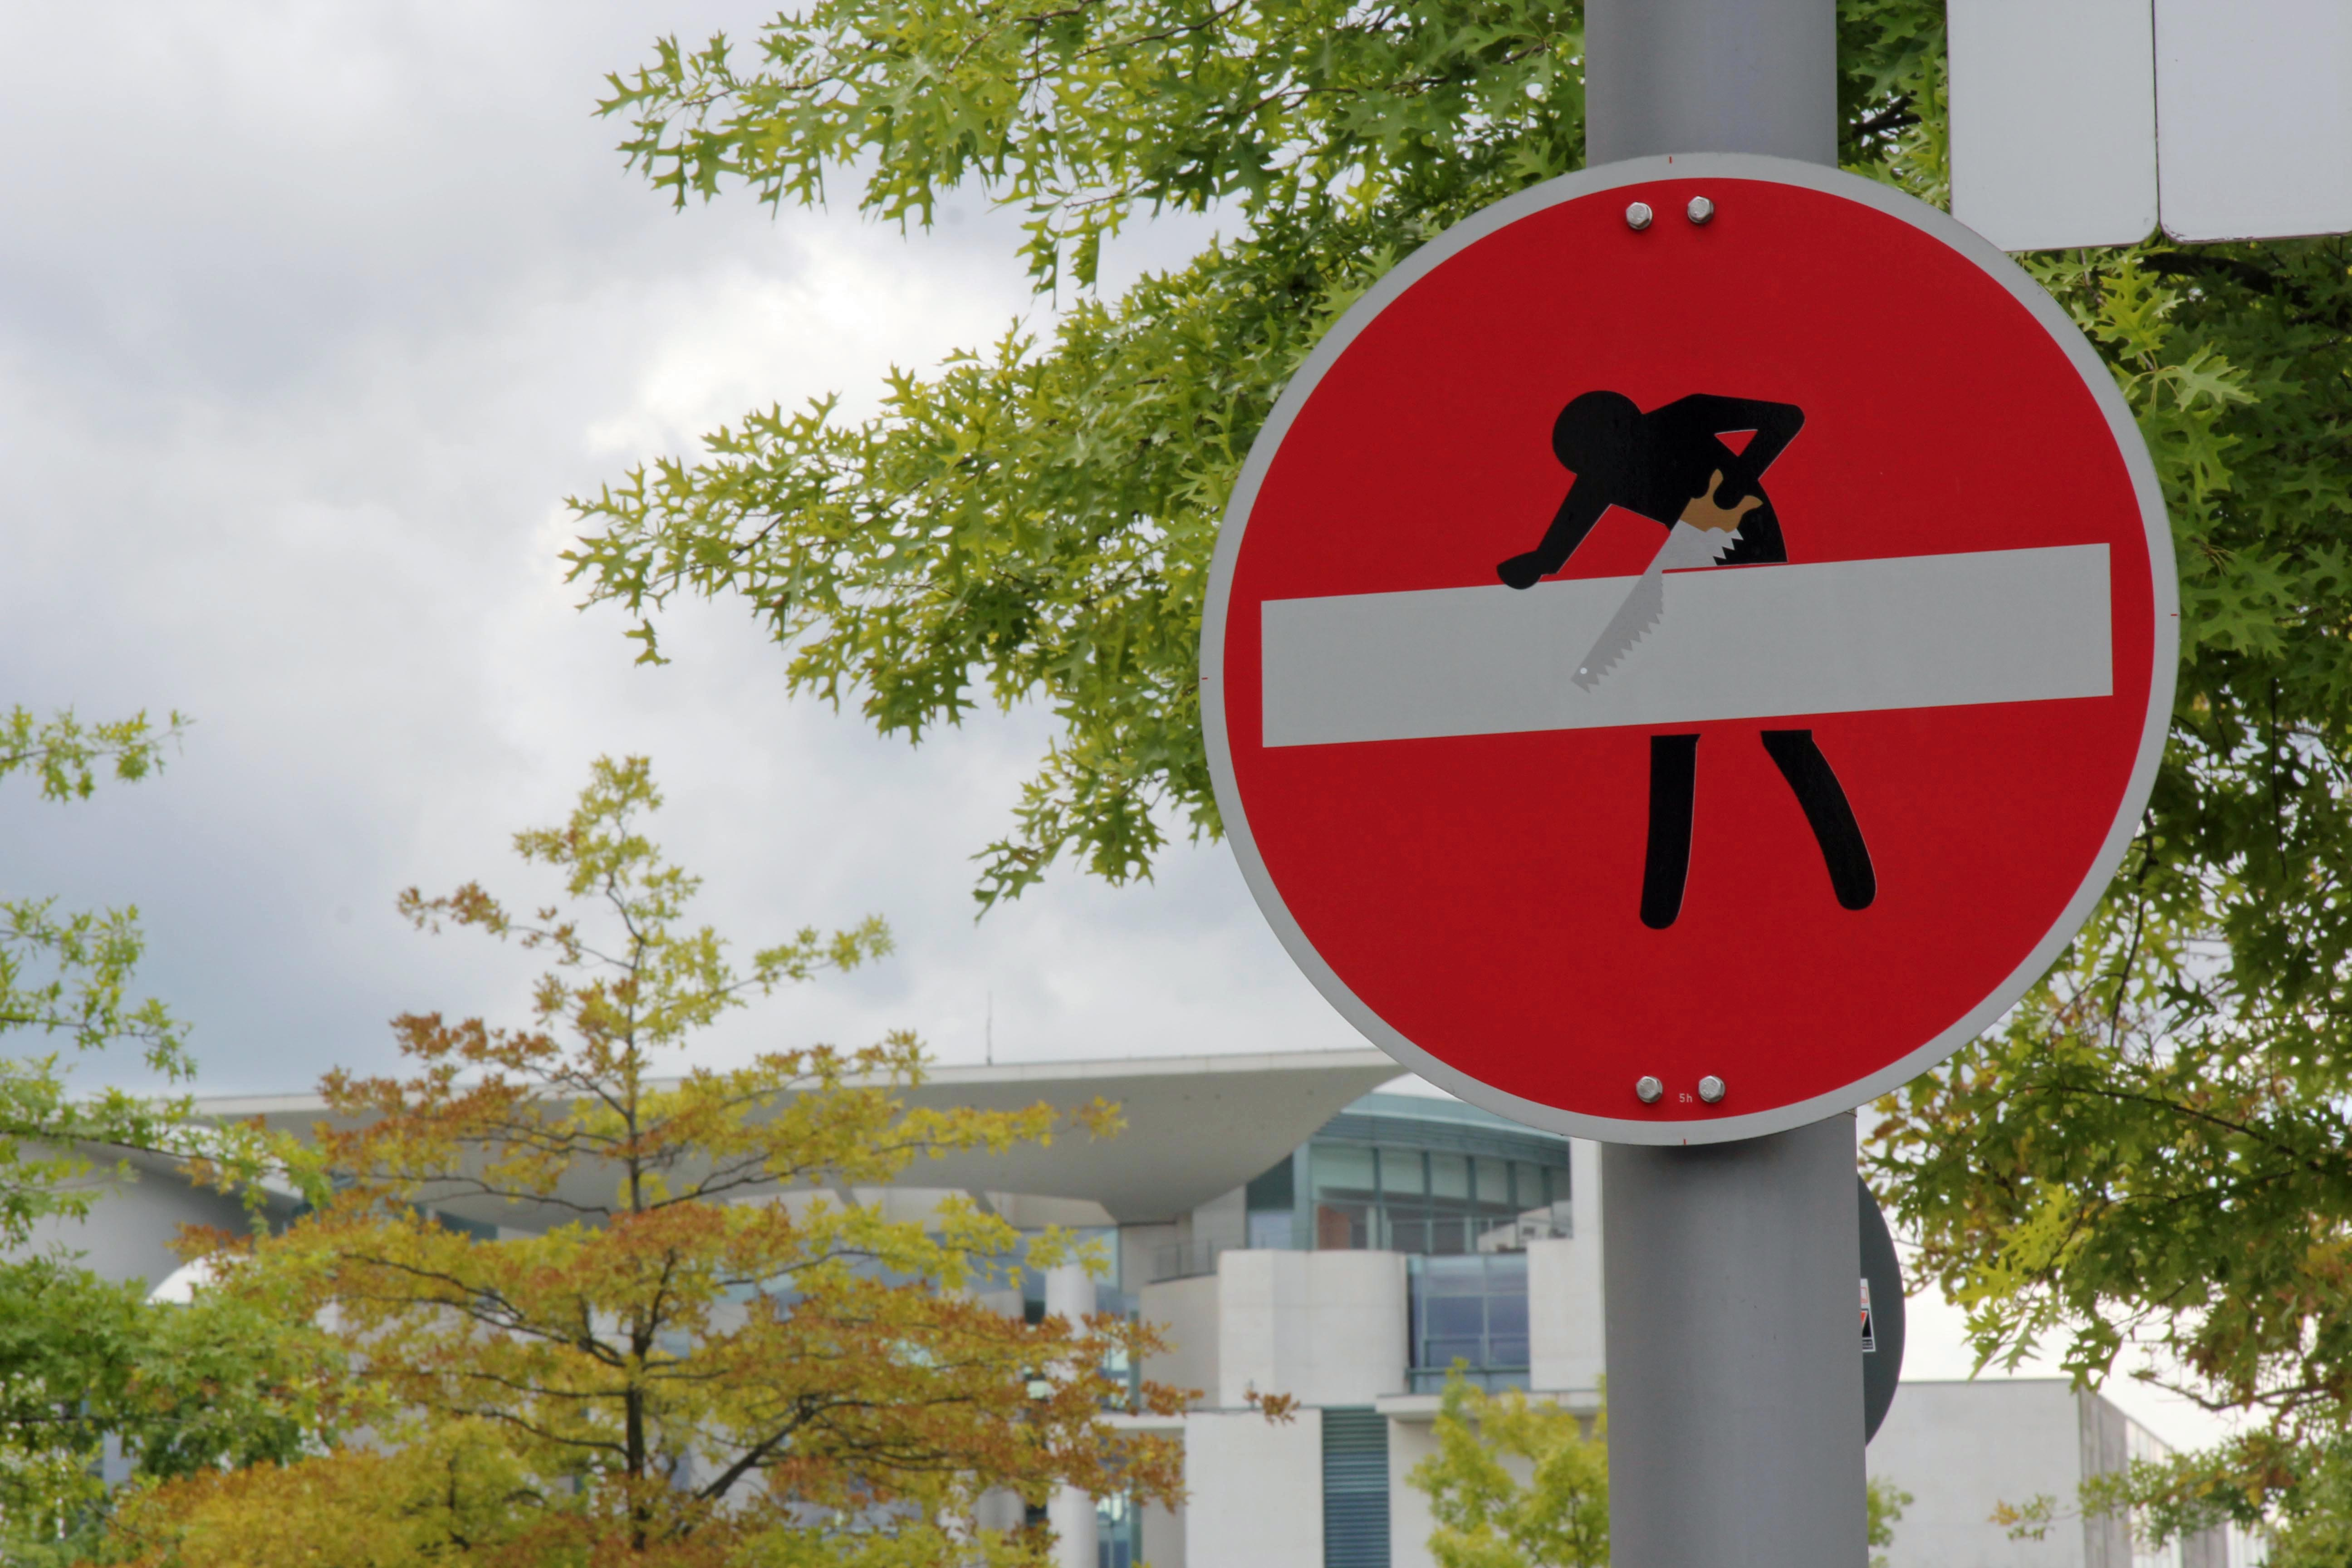 Sawing: A street sign intervention - the clever street (sign) art of CLET in Berlin